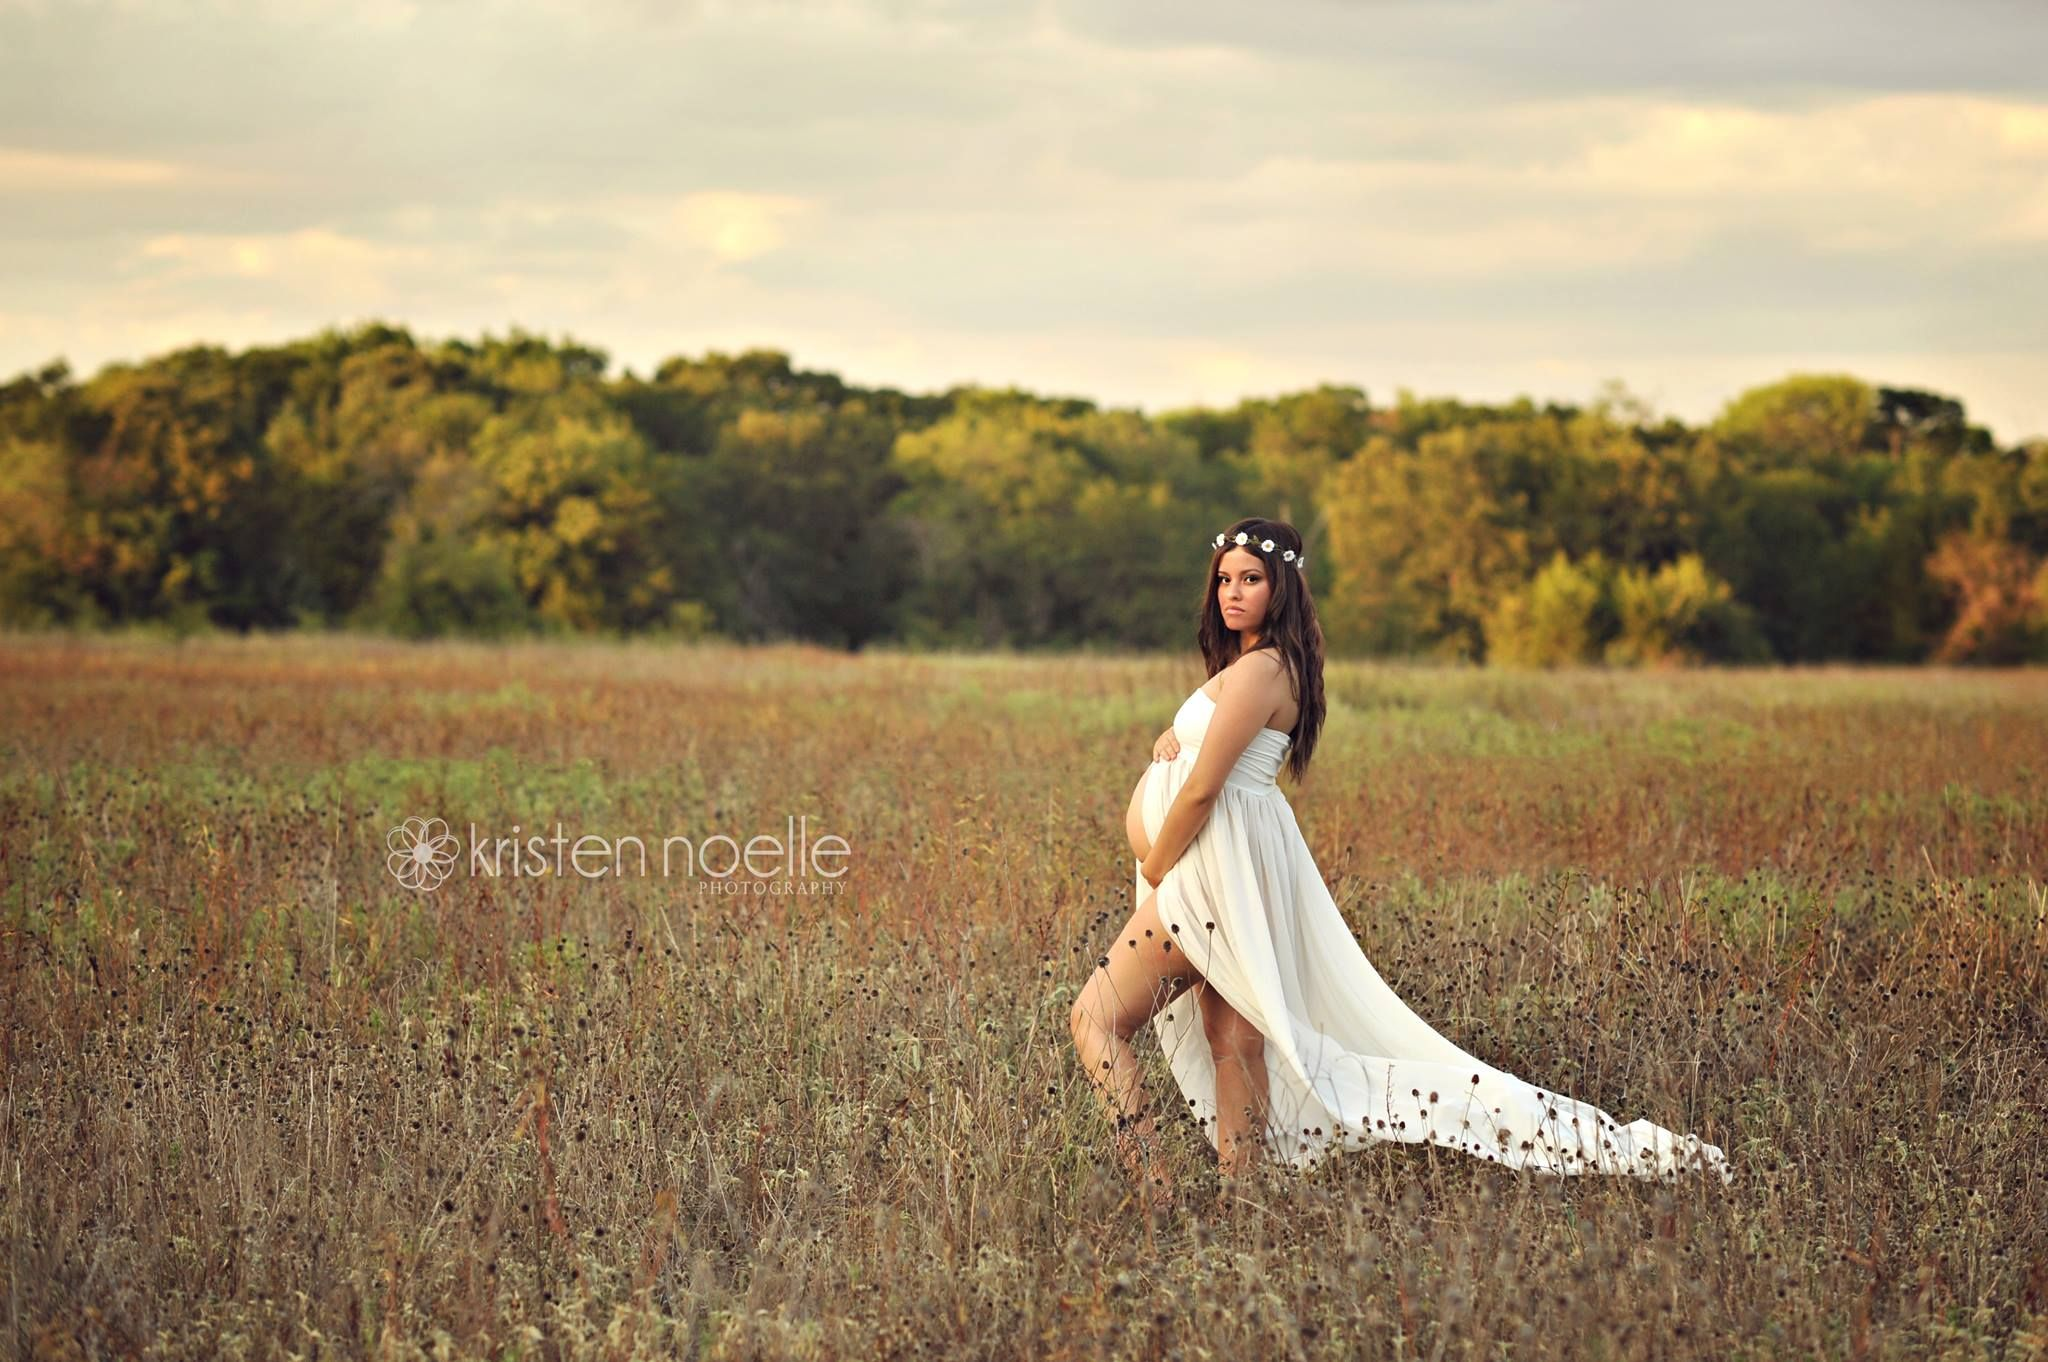 dc39f3921de82 Love this for maternity pictures. flow-y dress and flower crown and cowgirl  boots during a sunset in a field somewhere. :)